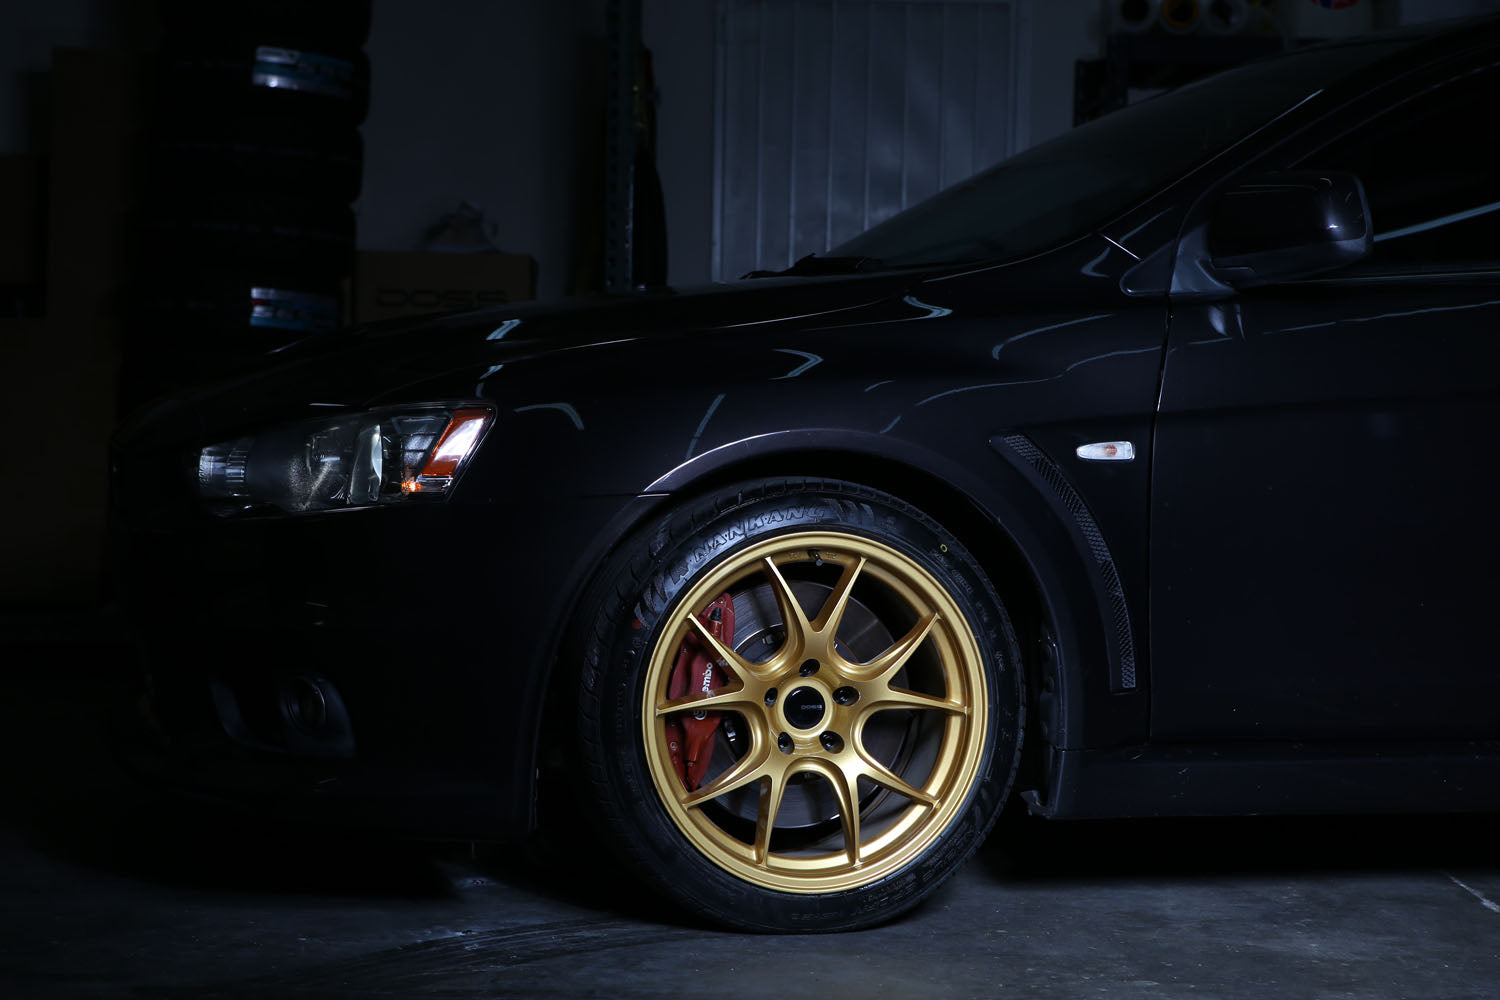 Mitsubishi Evo X Wheel Fitment - Doss Wheels 18x9.5 +20